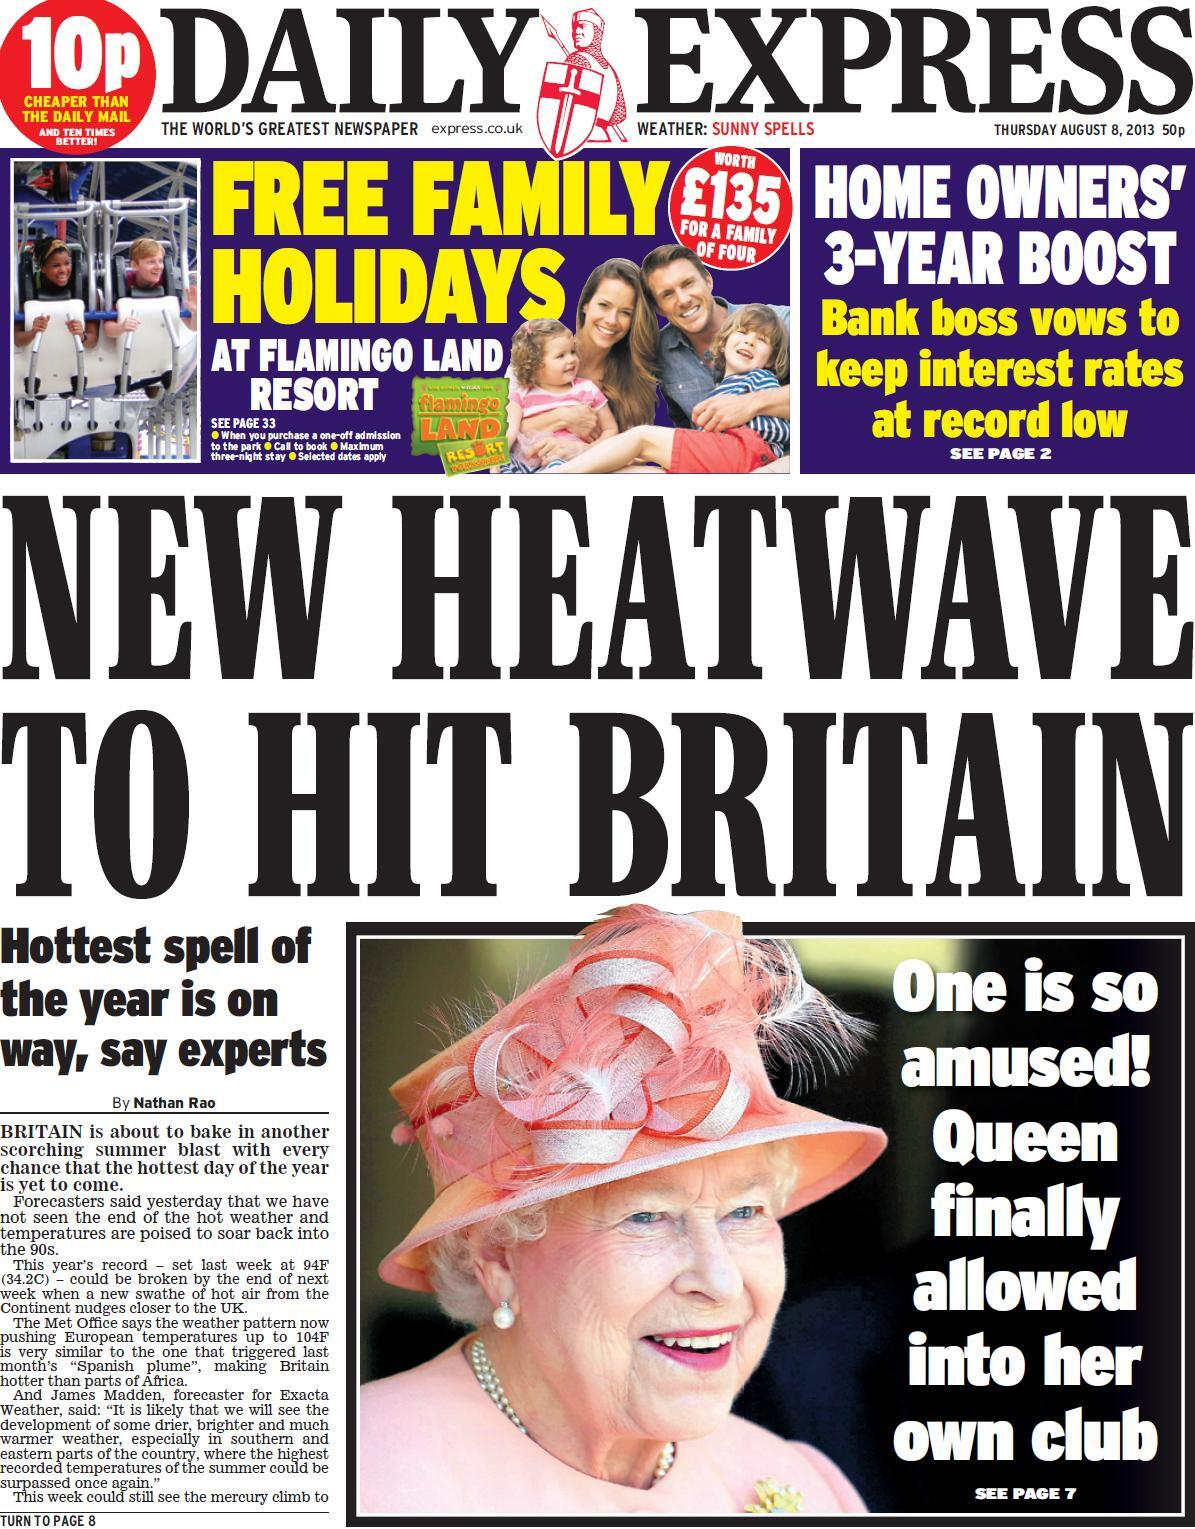 Thursday's Daily Express front page - 'New heatwave to hit Britain' #tomorrowspaperstoday #bbcpapers http://t.co/L43GvfU7df